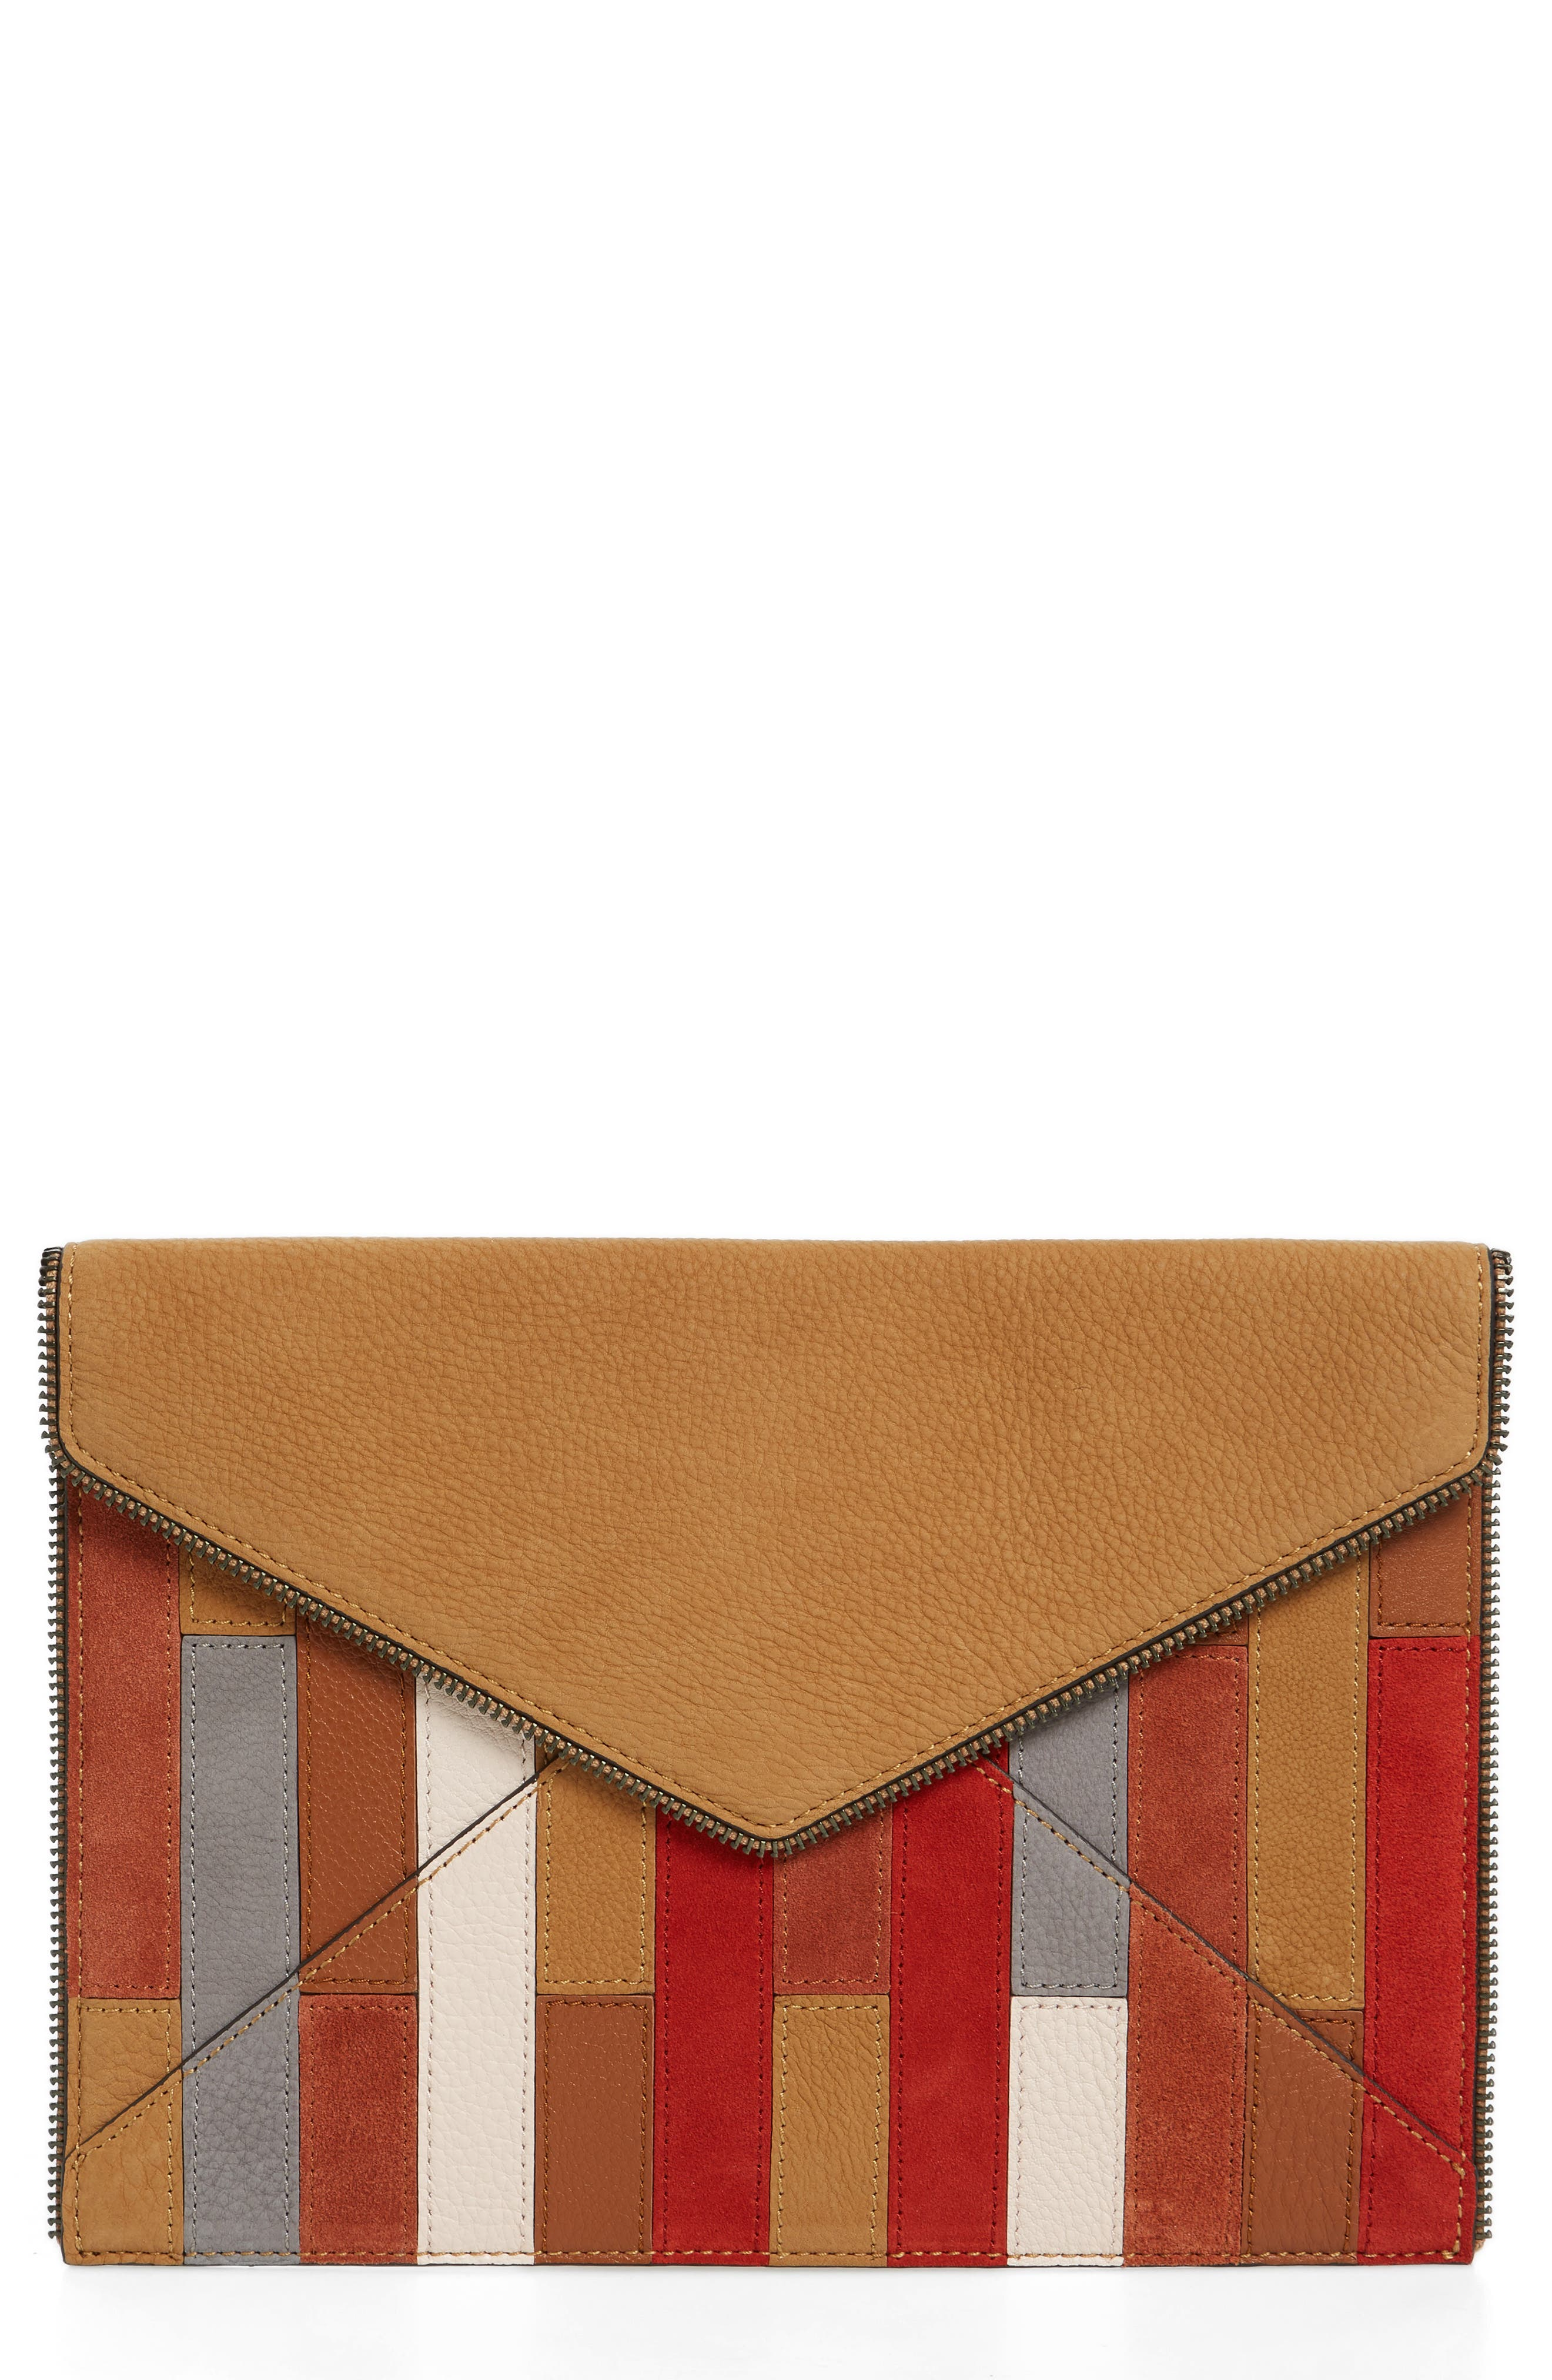 REBECCA MINKOFF,                             Leo Leather Envelope Clutch,                             Main thumbnail 1, color,                             210